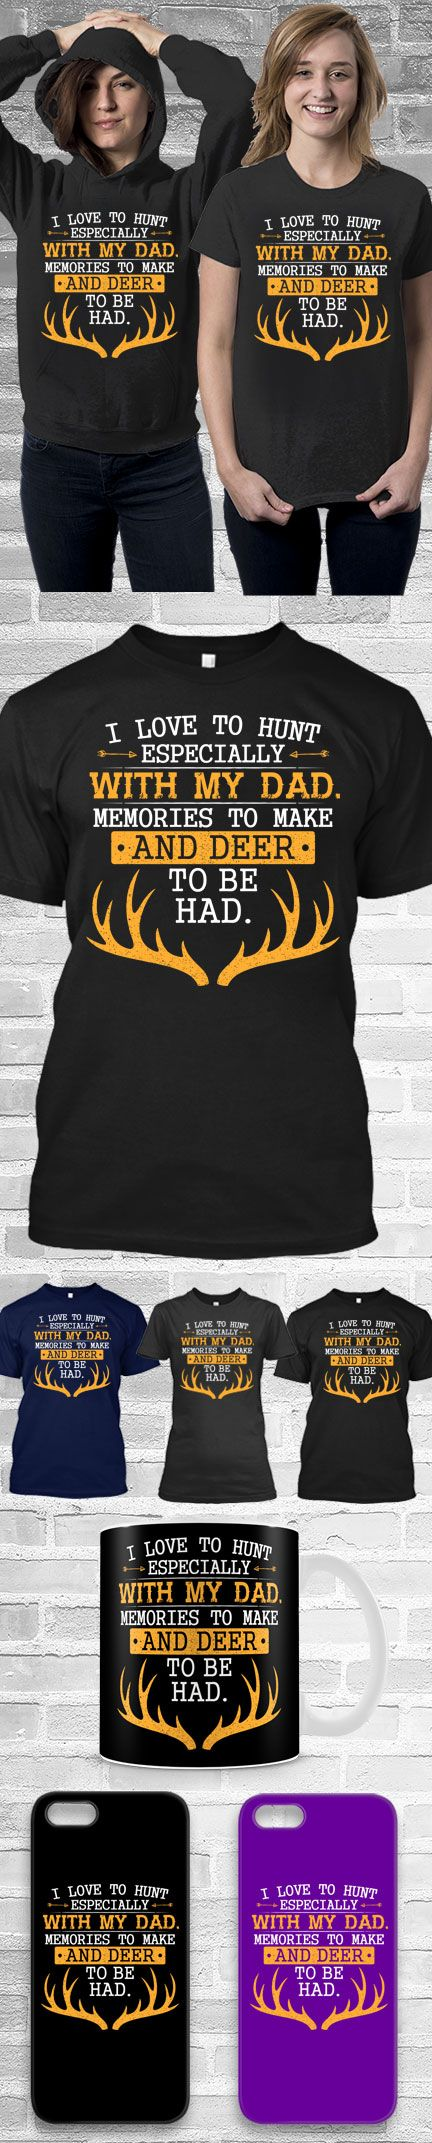 I Love To Hunt With My Dad Shirts! Click The Image To Buy It Now or Tag Someone You Want To Buy This For.  #hunting